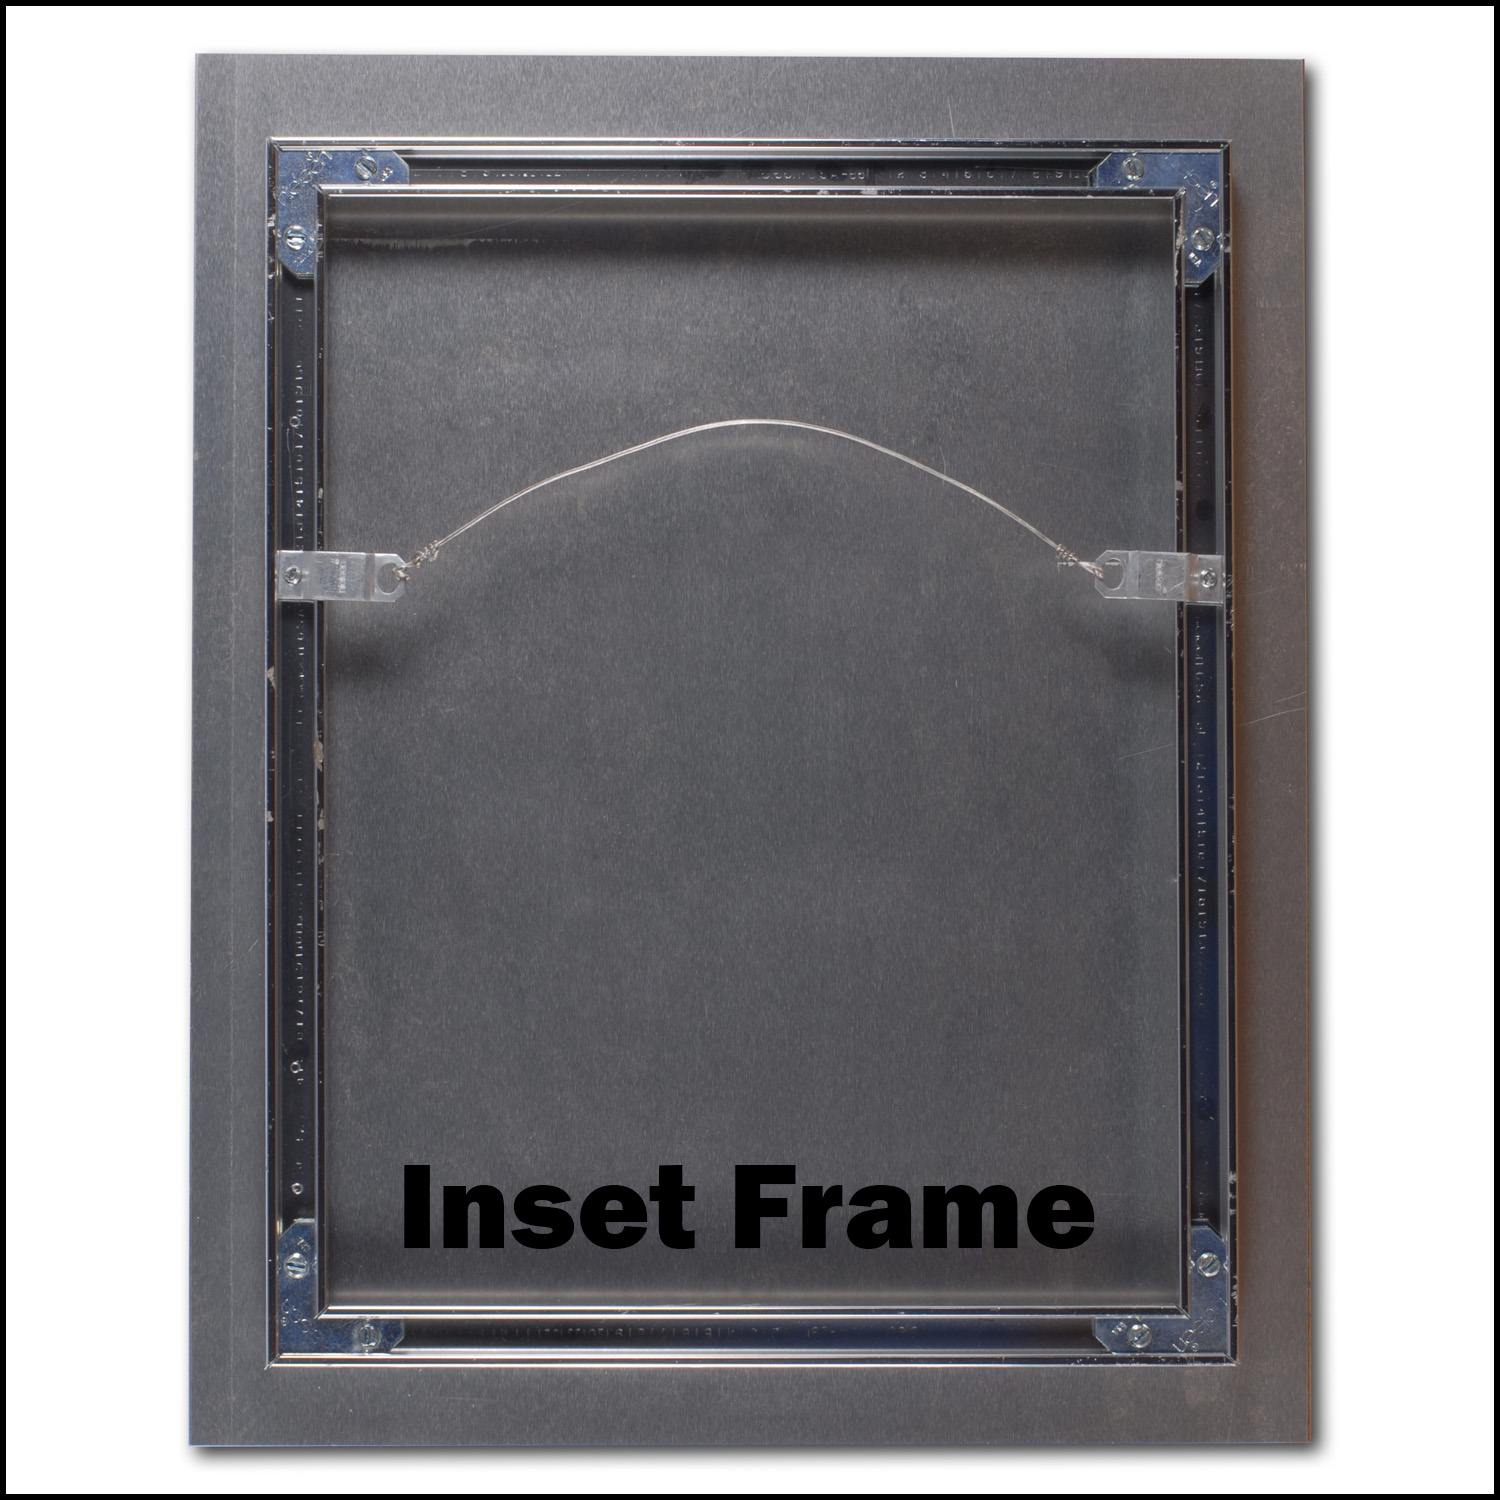 InsetFrame